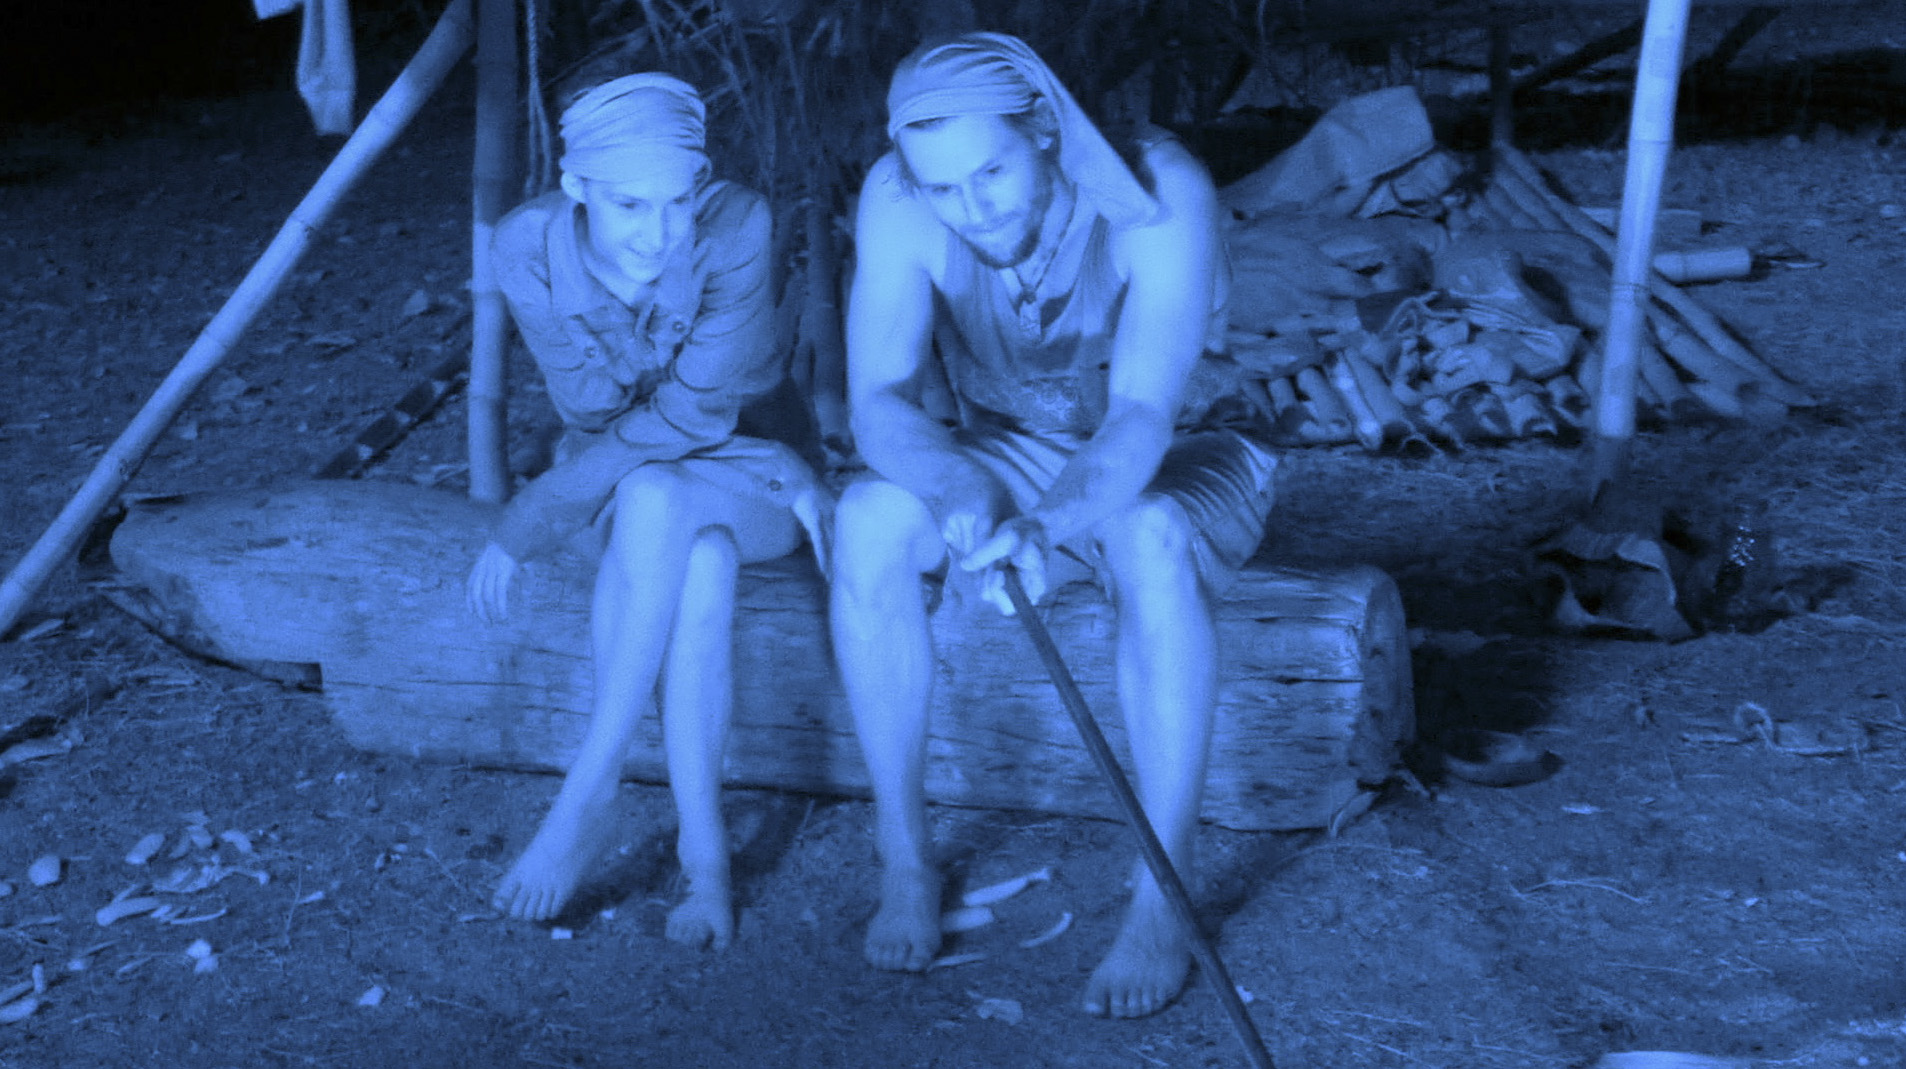 Ciera and Hayden in Season 27 Episode 13